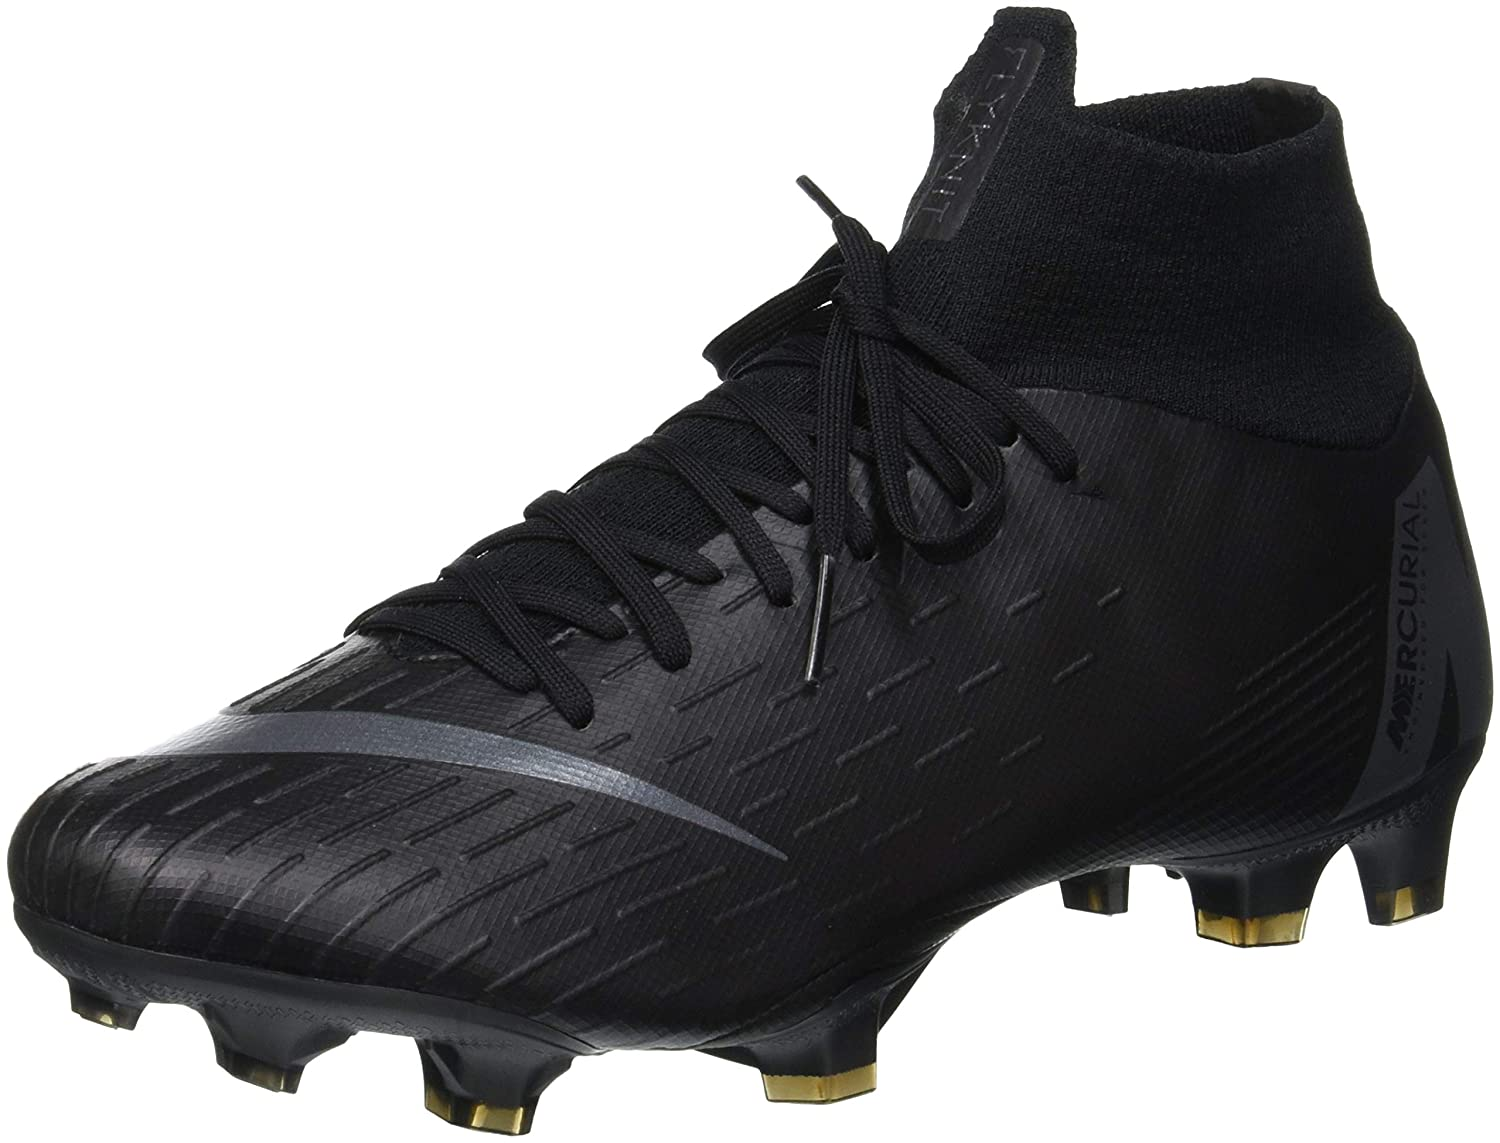 official photos fec0e a38f8 Amazon.com  Nike Mercurial Superfly 6 Pro FG Soccer Cleat (Black) (Mens  8.5Womens 10)  Soccer